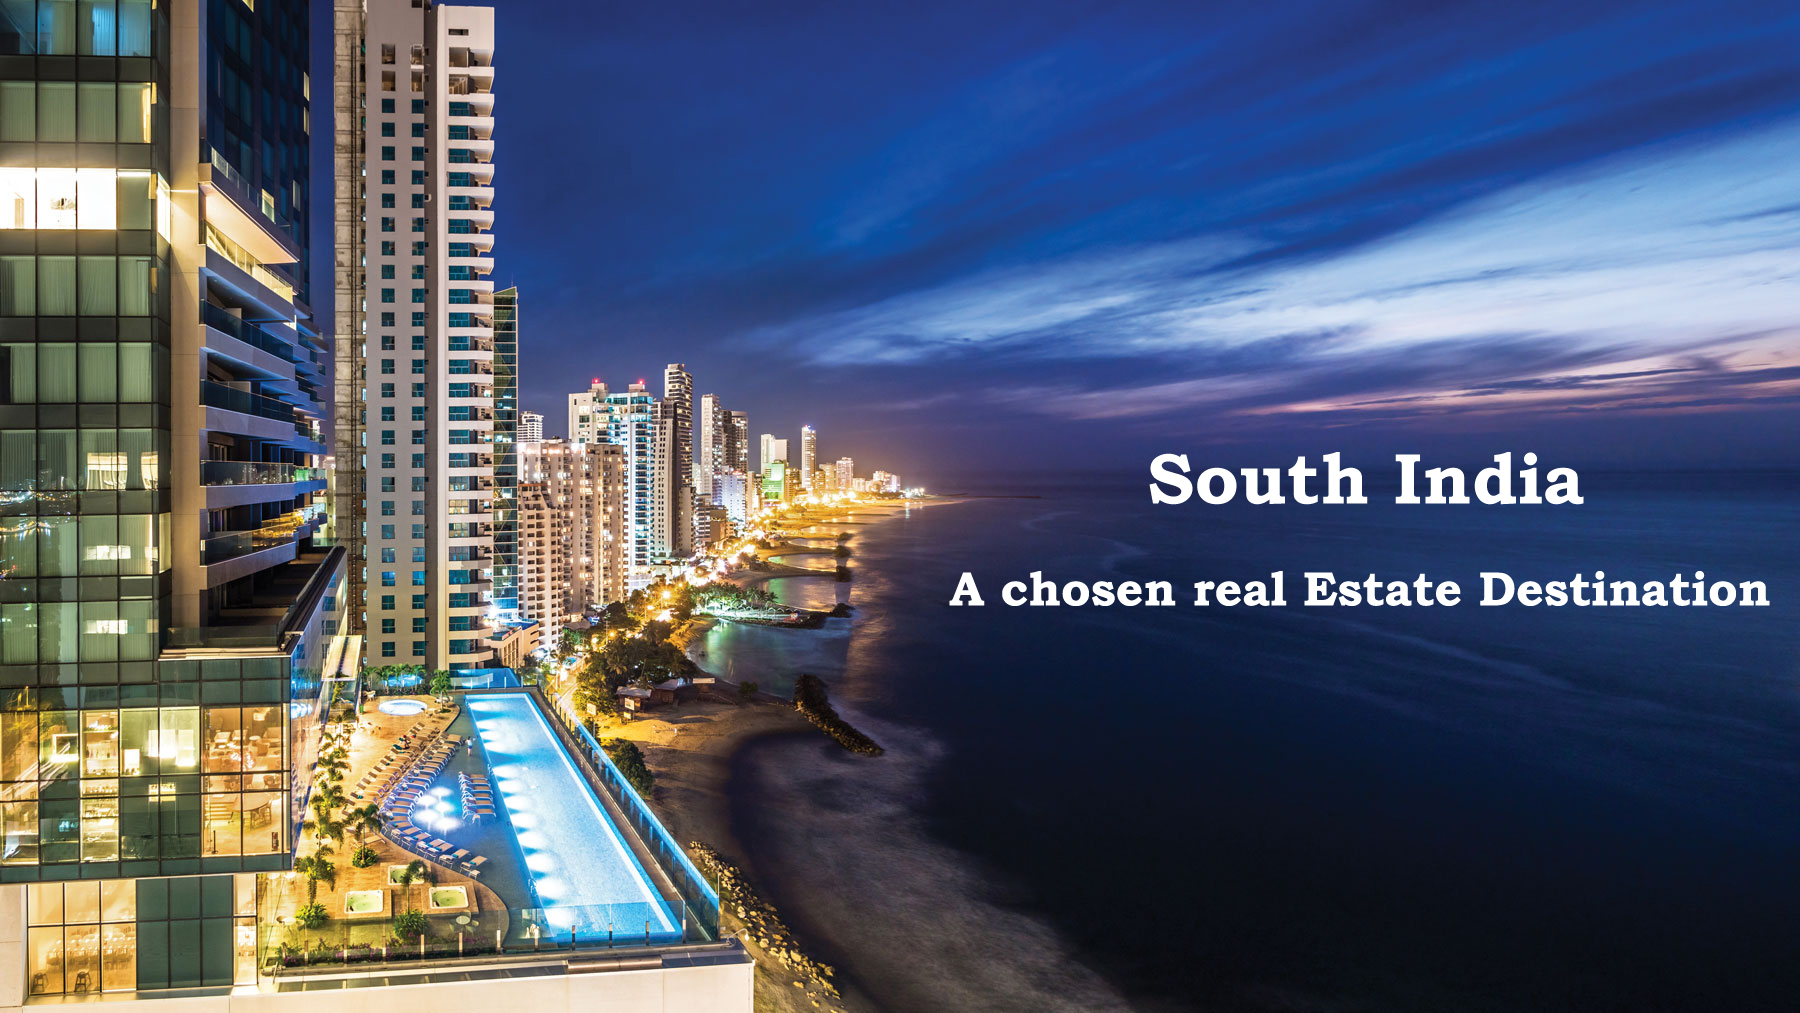 South India – A chosen real estate destination.